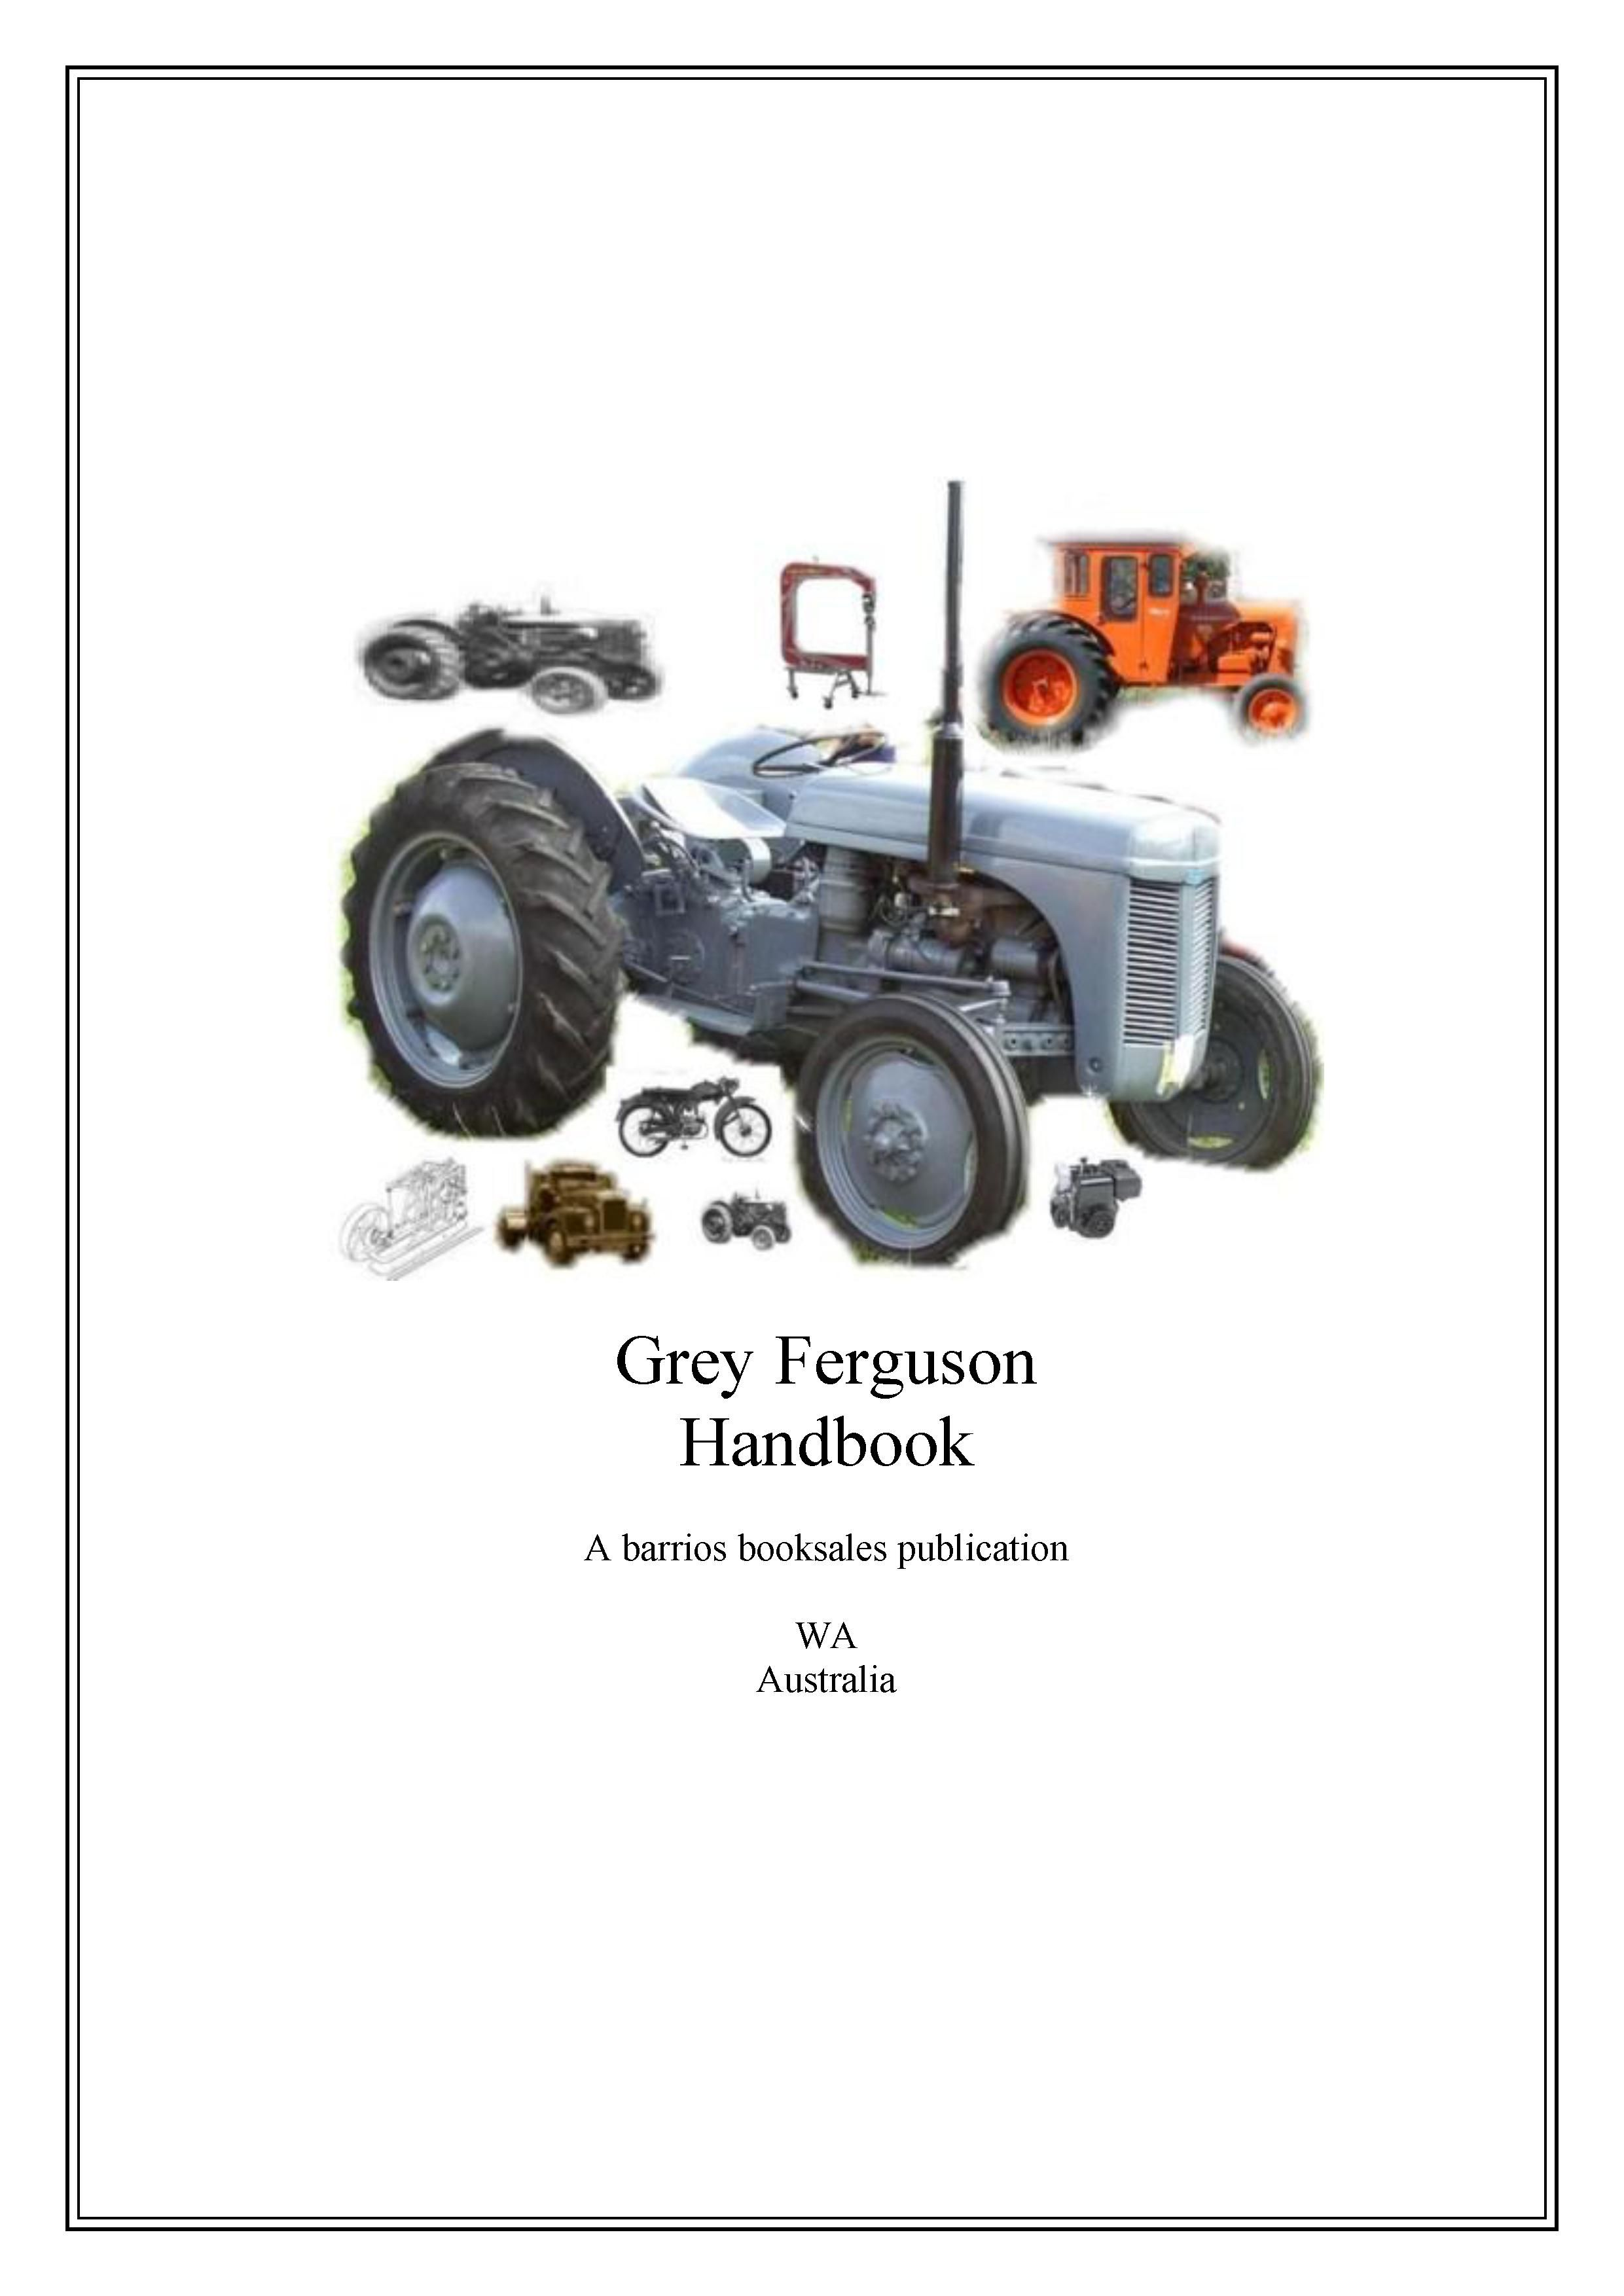 Pin by Tractor manuals downunder on Ferguson Massey Ferguson manuals to  download | Pinterest